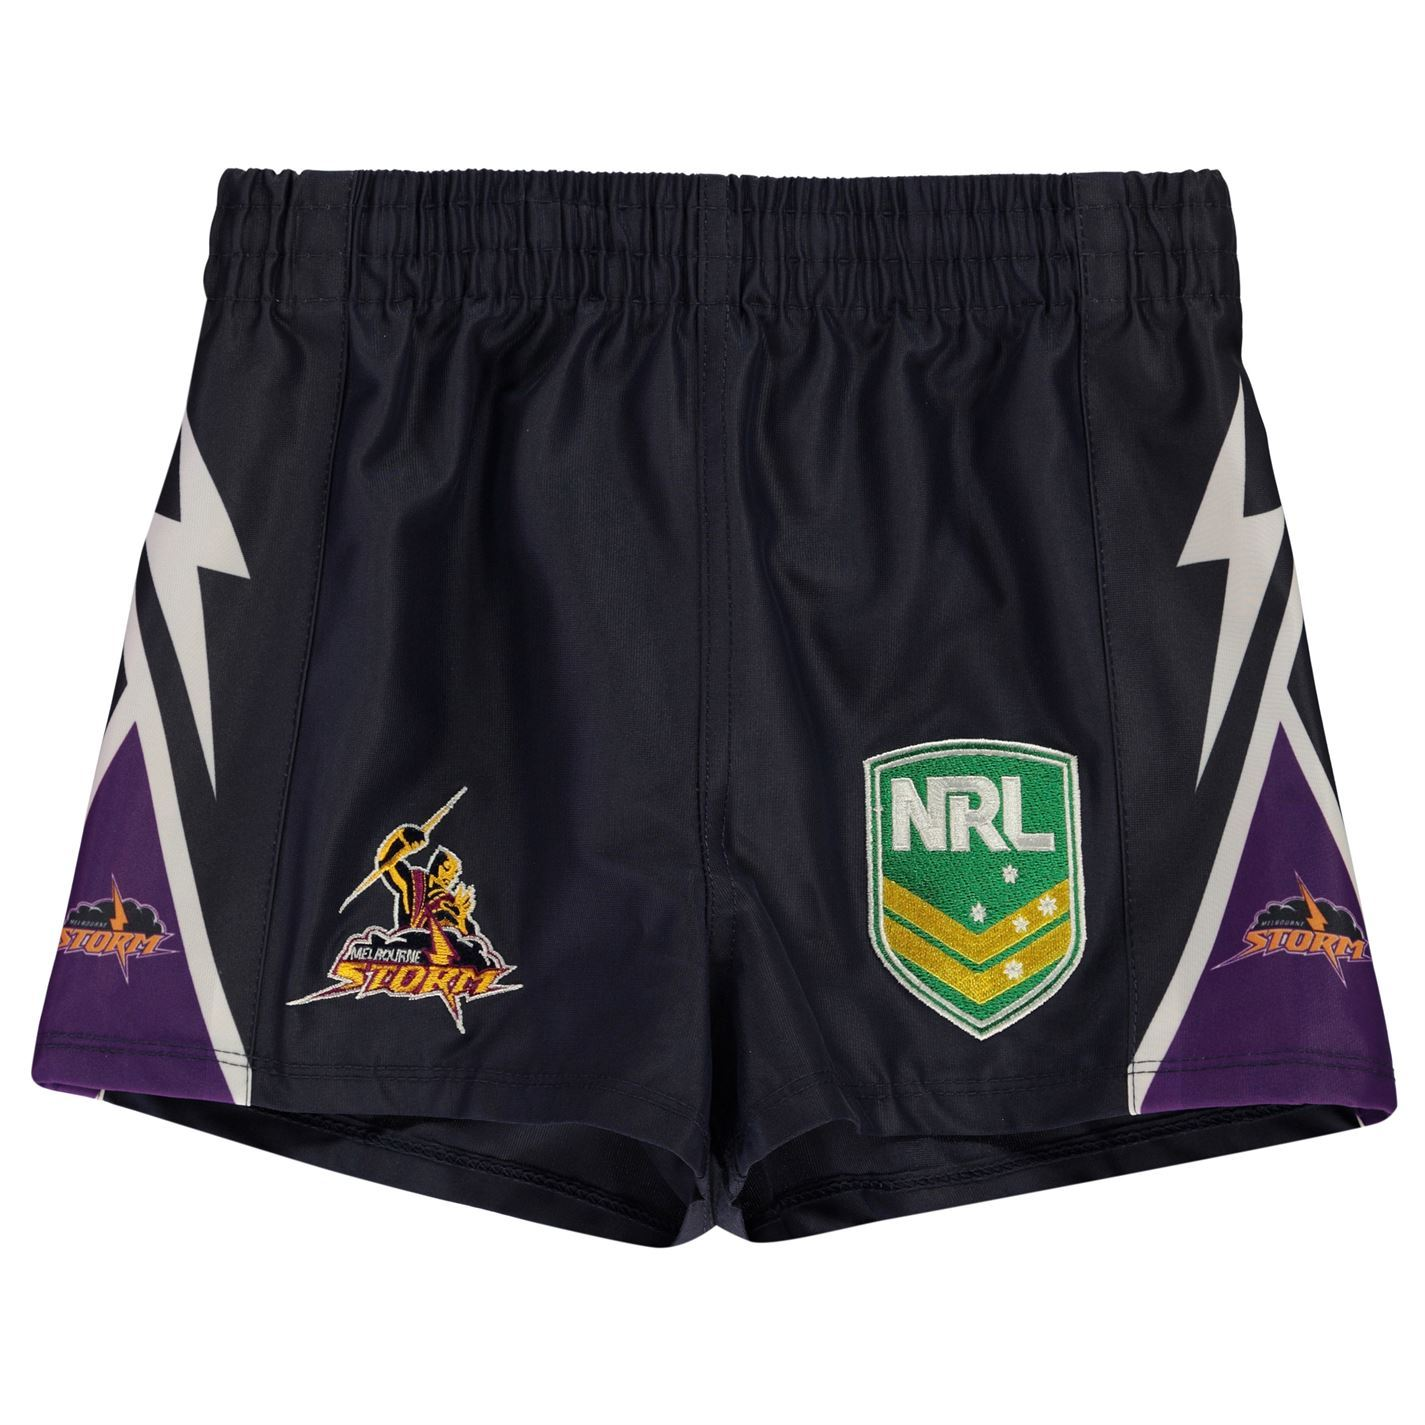 NRL-Supporter-Shorts-Juniors-Rugby-League-Storm-Bulldog-Sea-Eagles-Eels-Roosters thumbnail 6